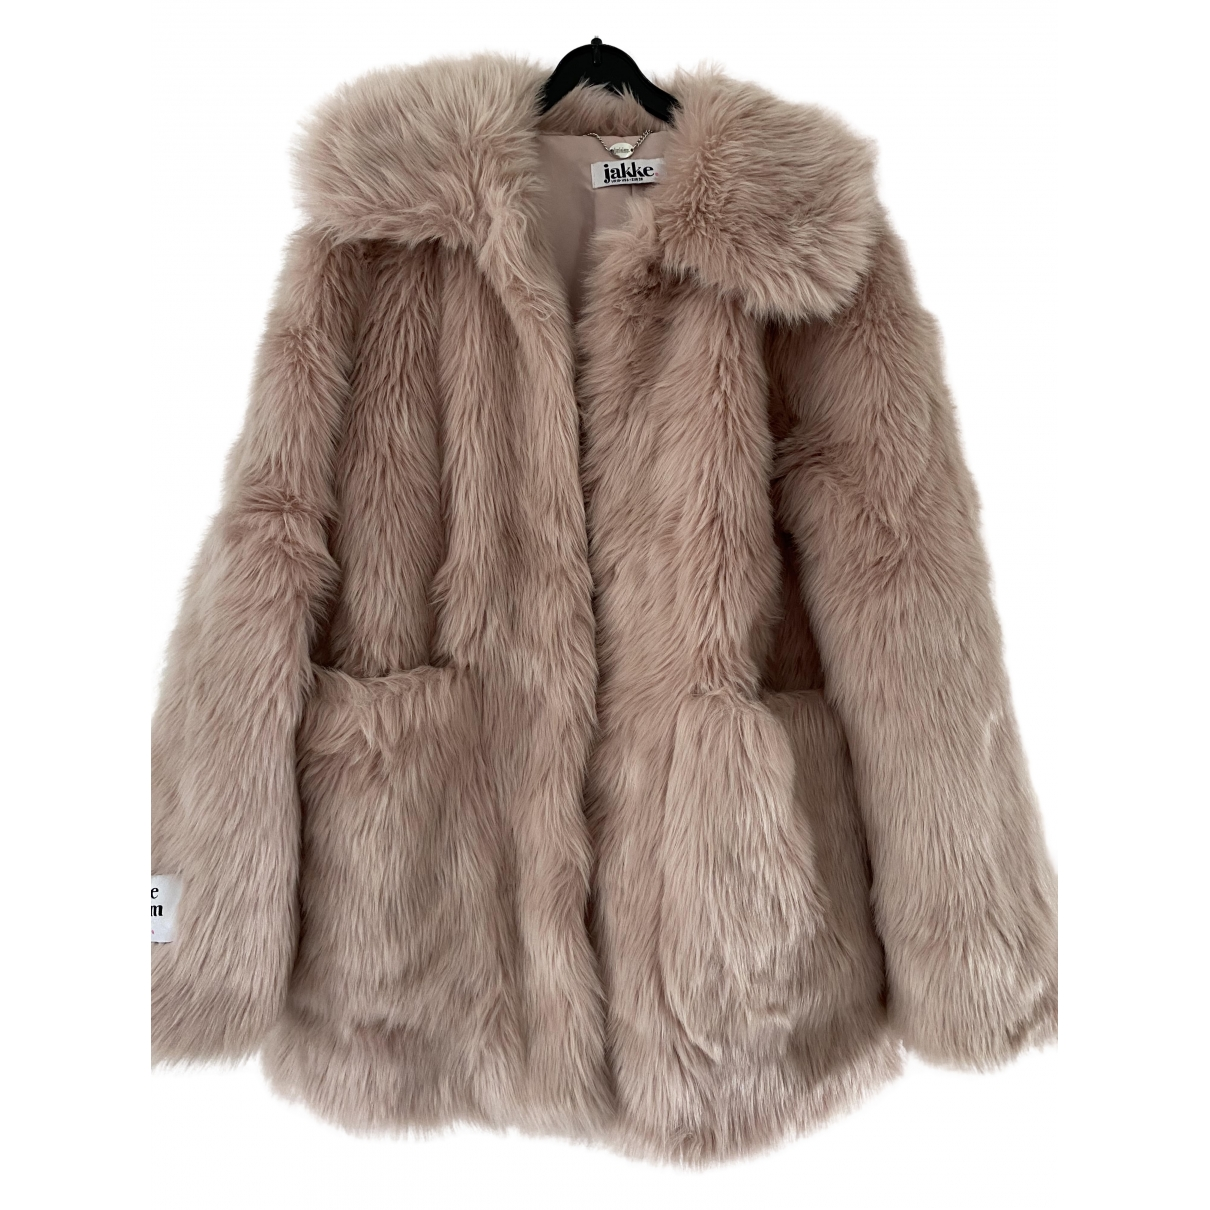 Jakke \N Pink Faux fur coat for Women 10 UK